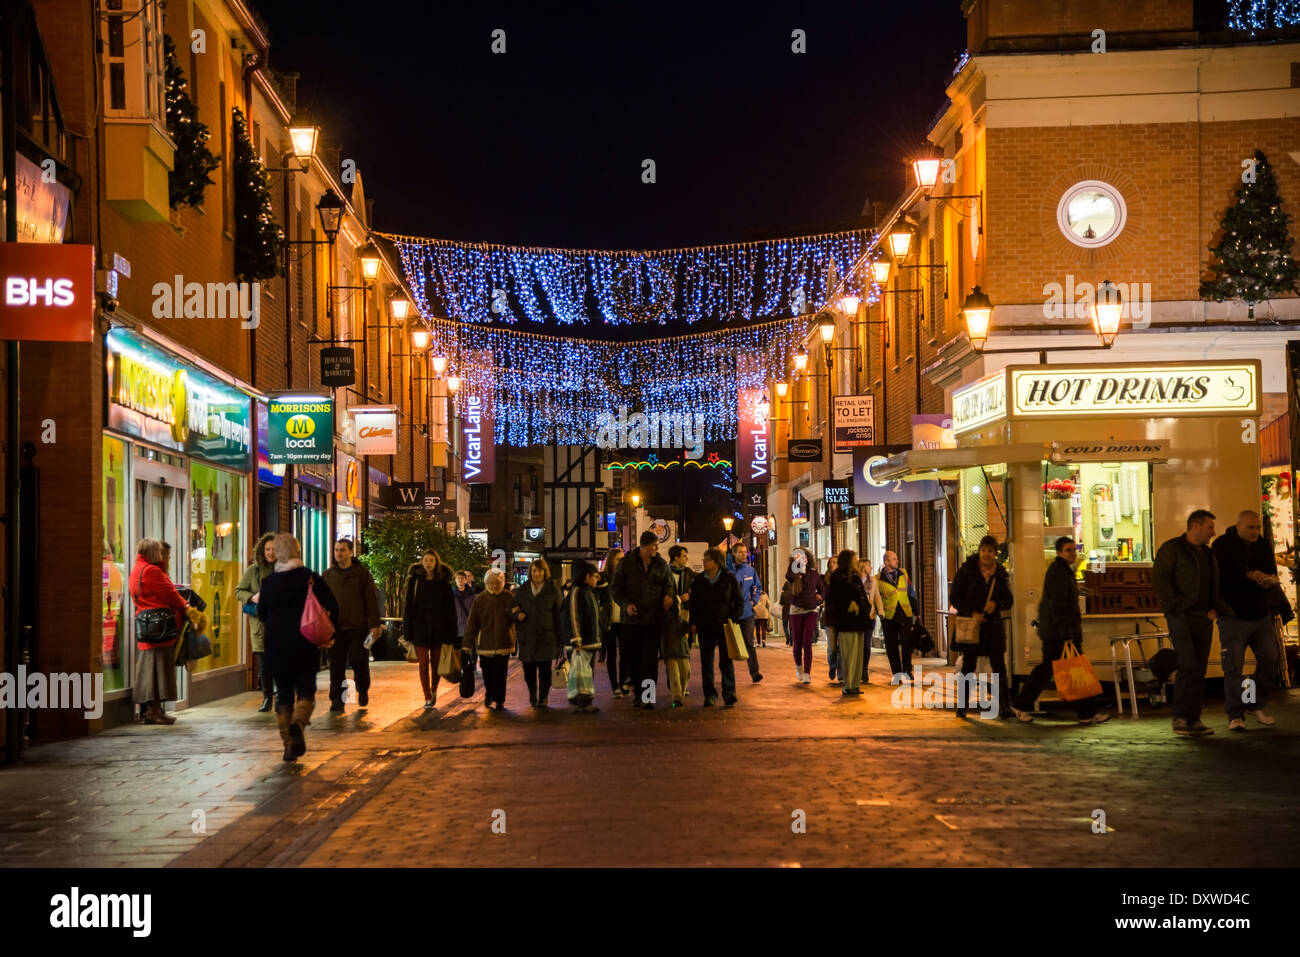 christmas shoppers out late at night in chesterfield town lit up with stock photo royalty free. Black Bedroom Furniture Sets. Home Design Ideas